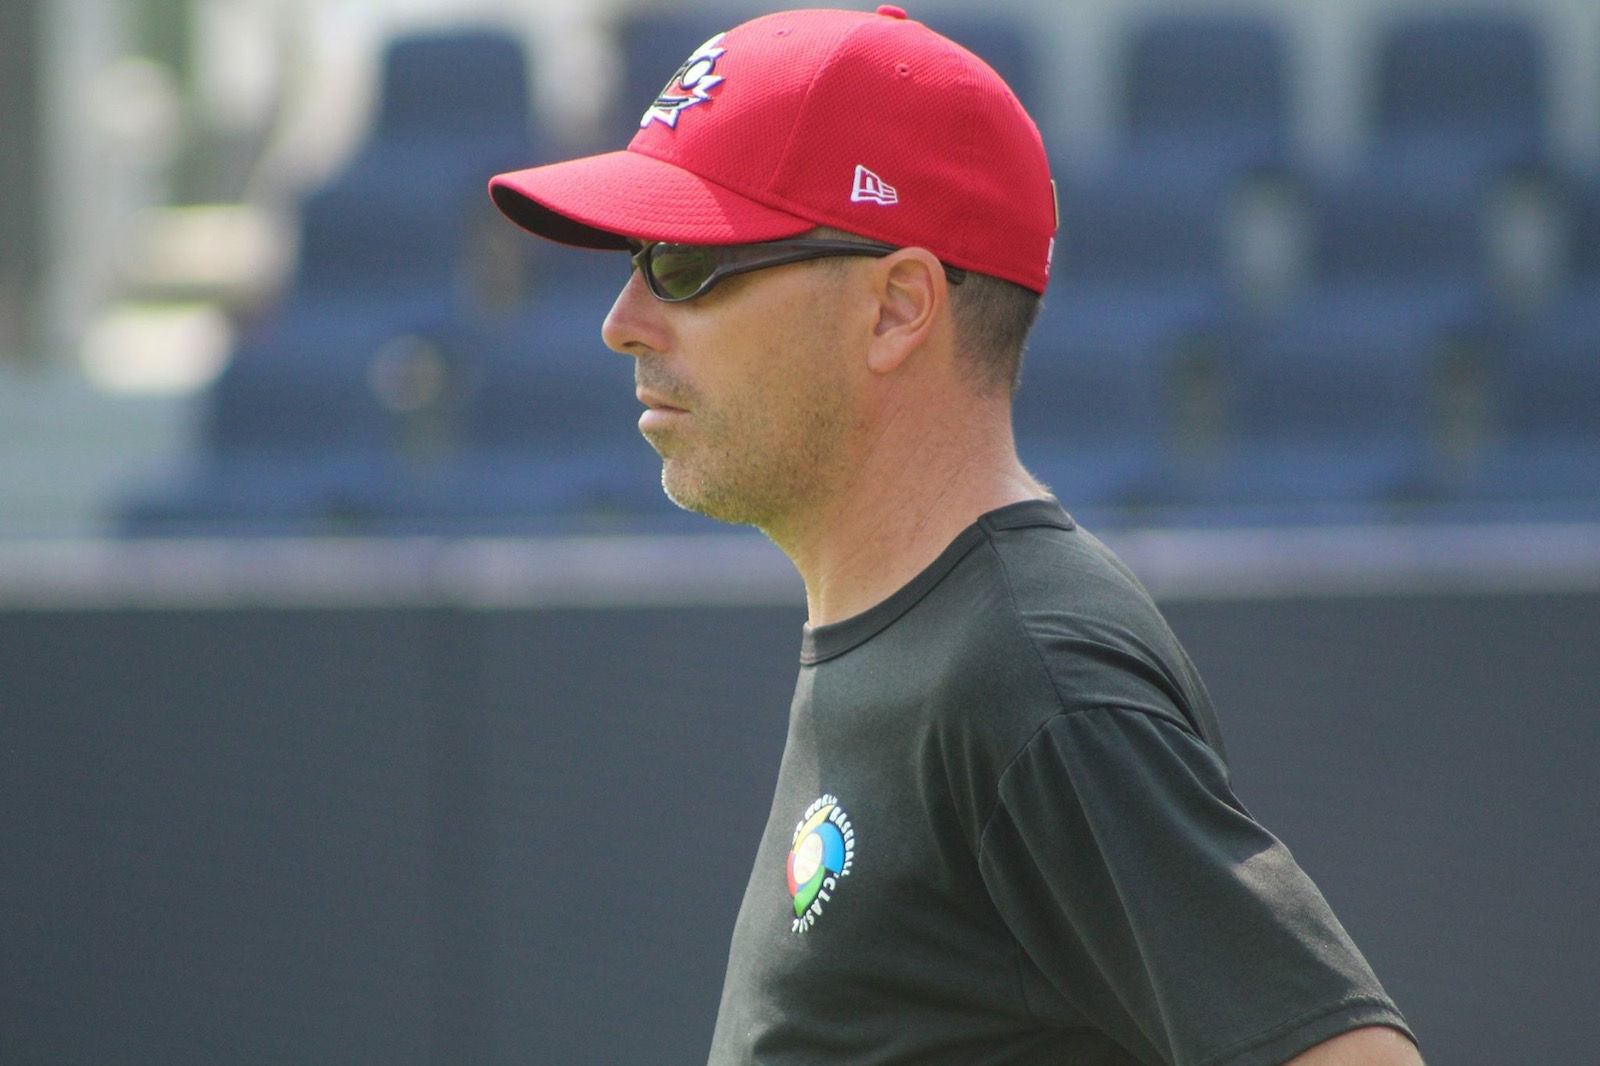 Lachance to step down following Women's Baseball World Cup